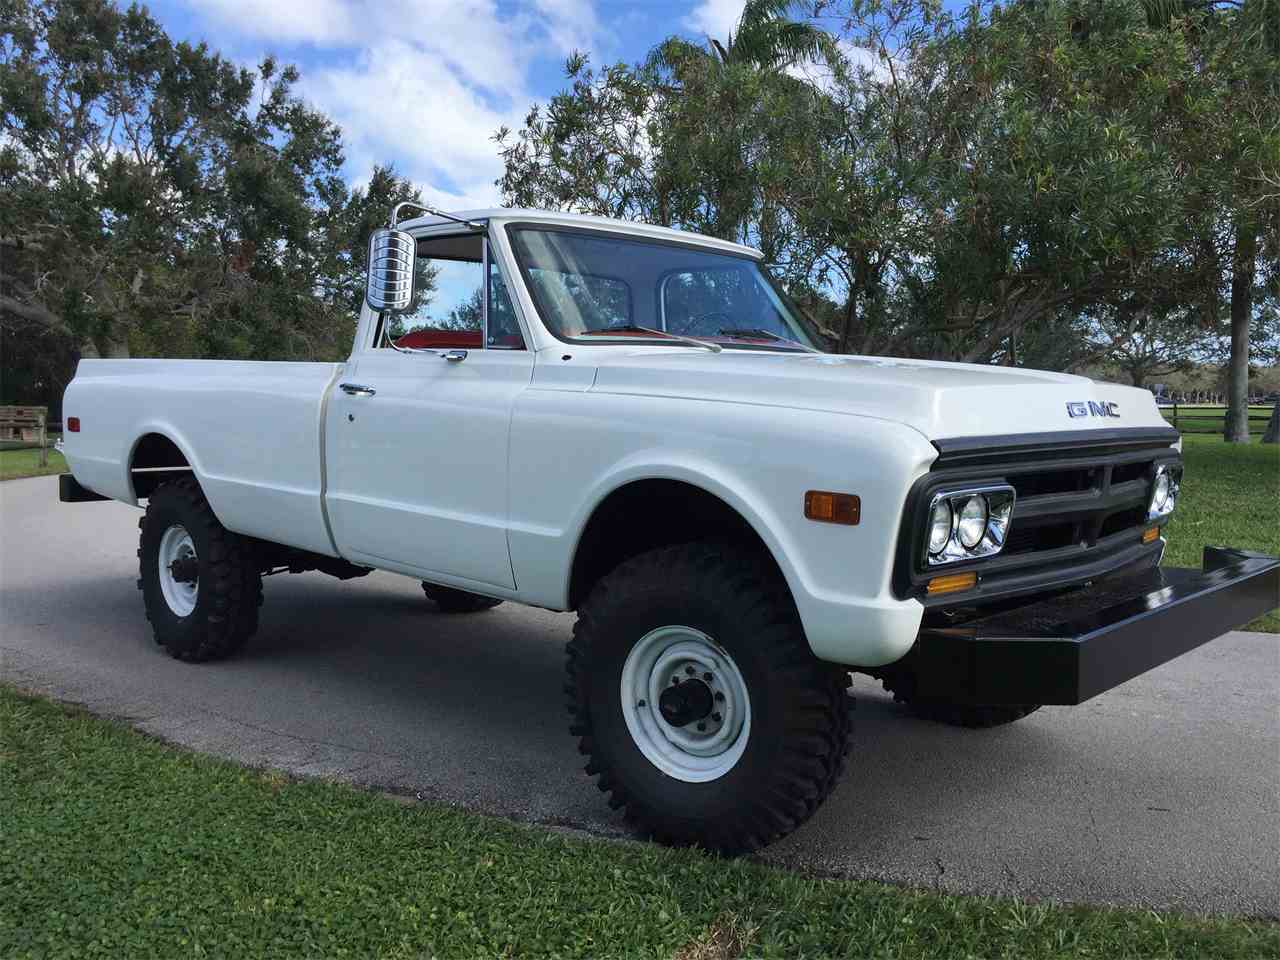 Florida Gmc Truck Dealers1969 For Sale Classiccars Com Cc 1969 Pickup 943178